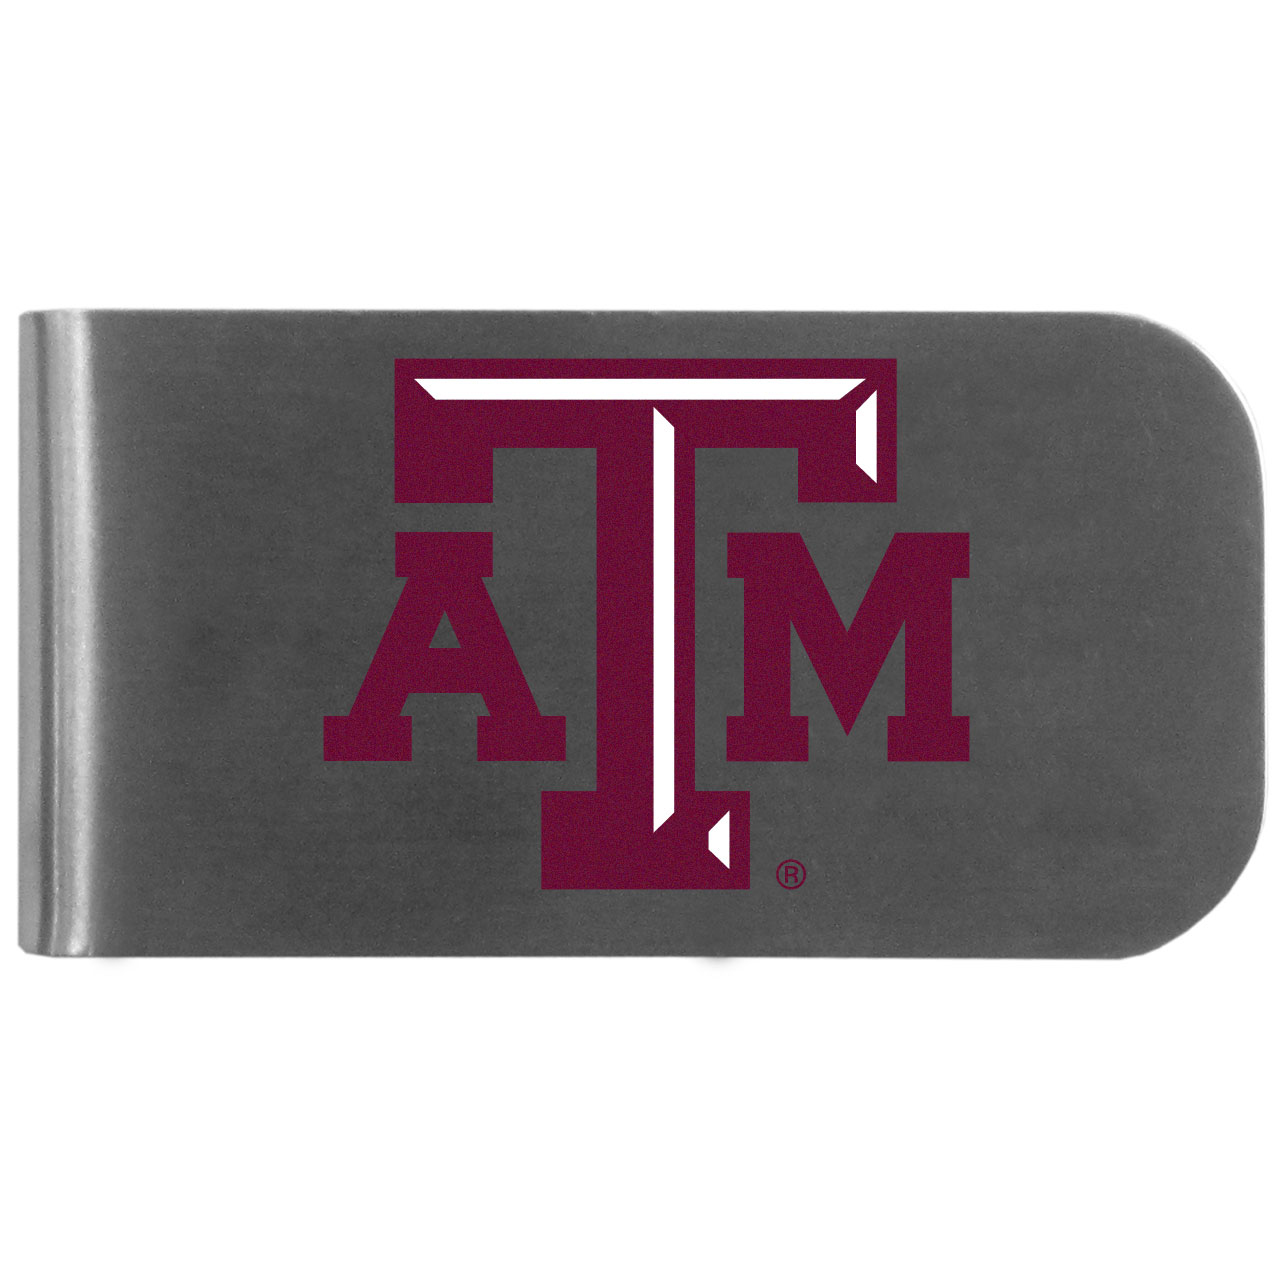 Texas A & M Aggies Logo Bottle Opener Money Clip - This unique money clip features a classic, brushed-metal finish with a handy bottle opener feature on the back. The clip has the Texas A & M Aggies logo expertly printed on the front of the clip.